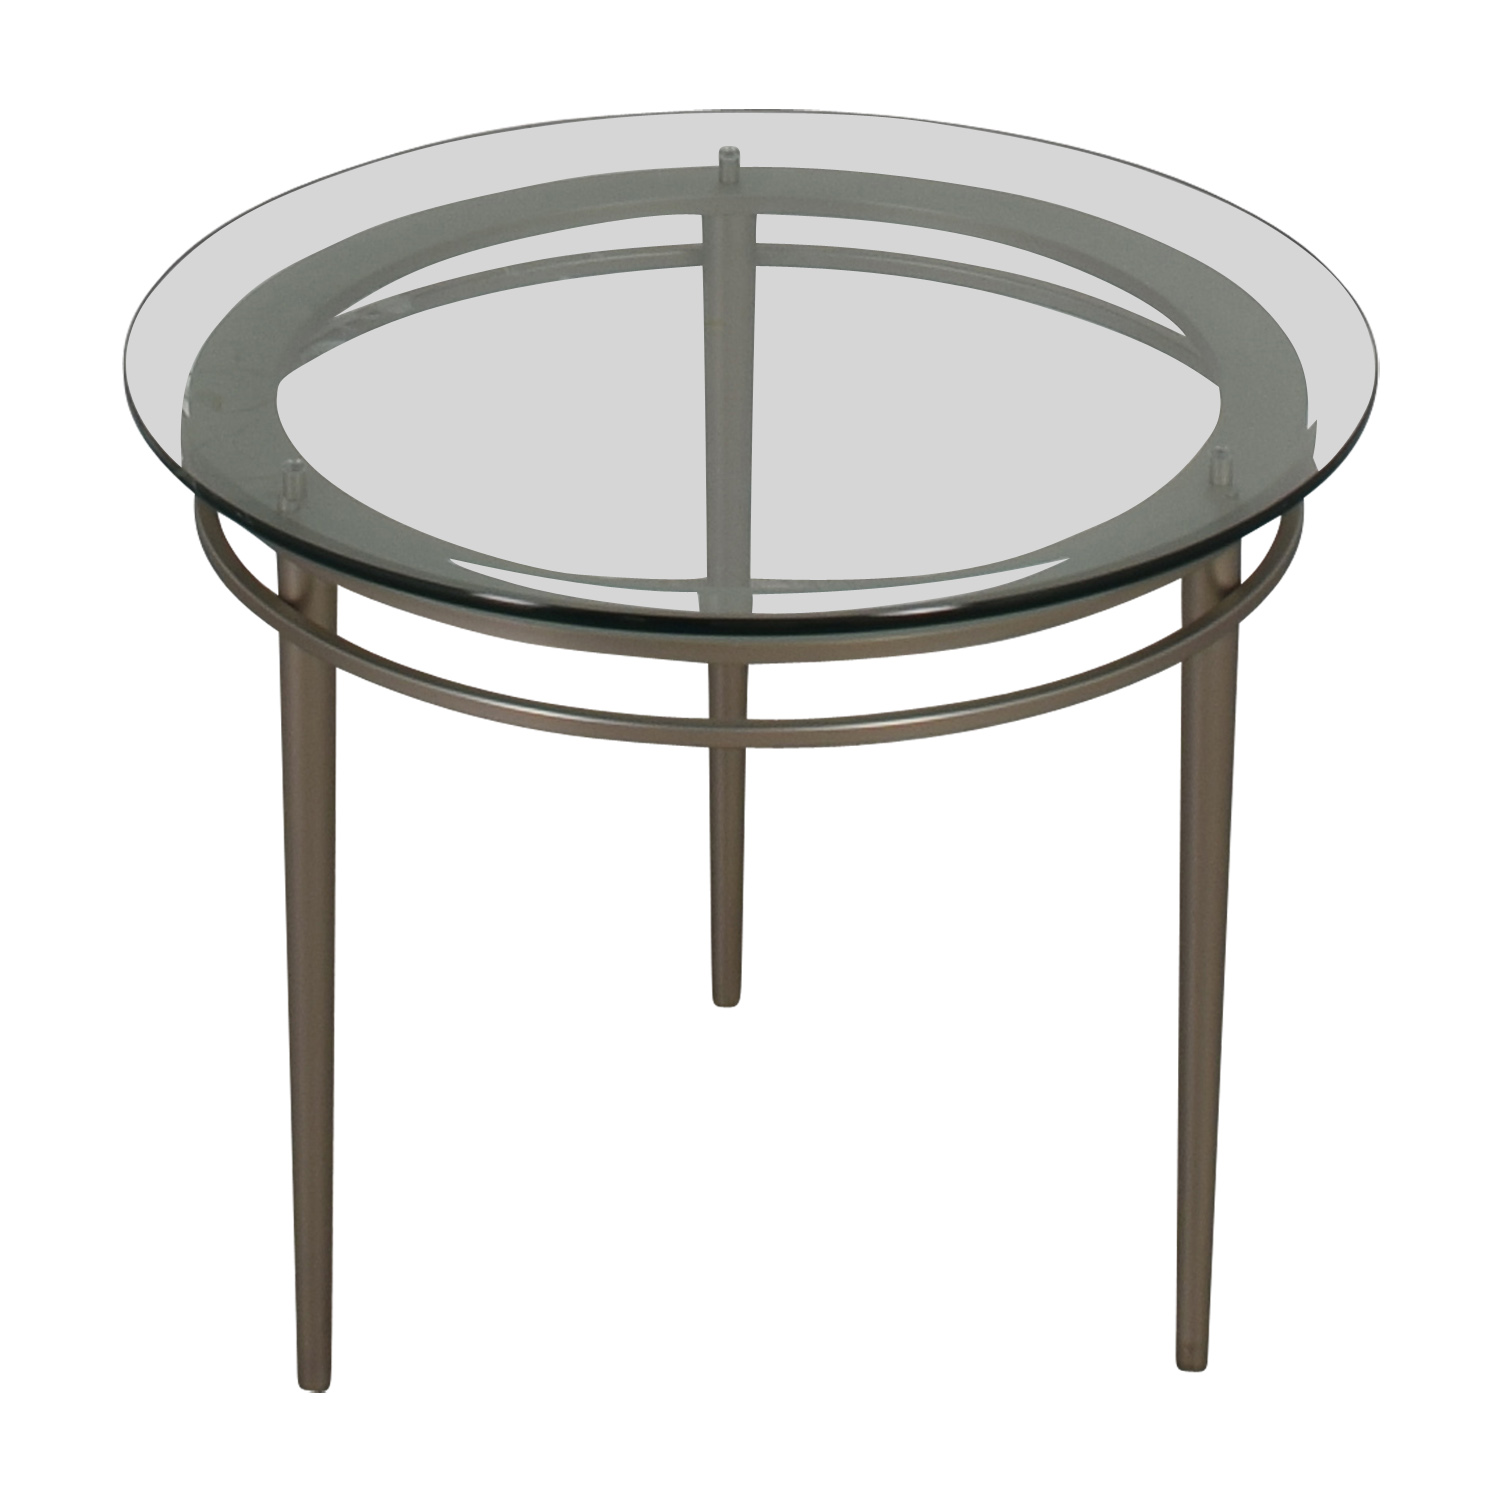 Ethan Allen Ethan Allen Round Glass and Chrome Side Table dimensions